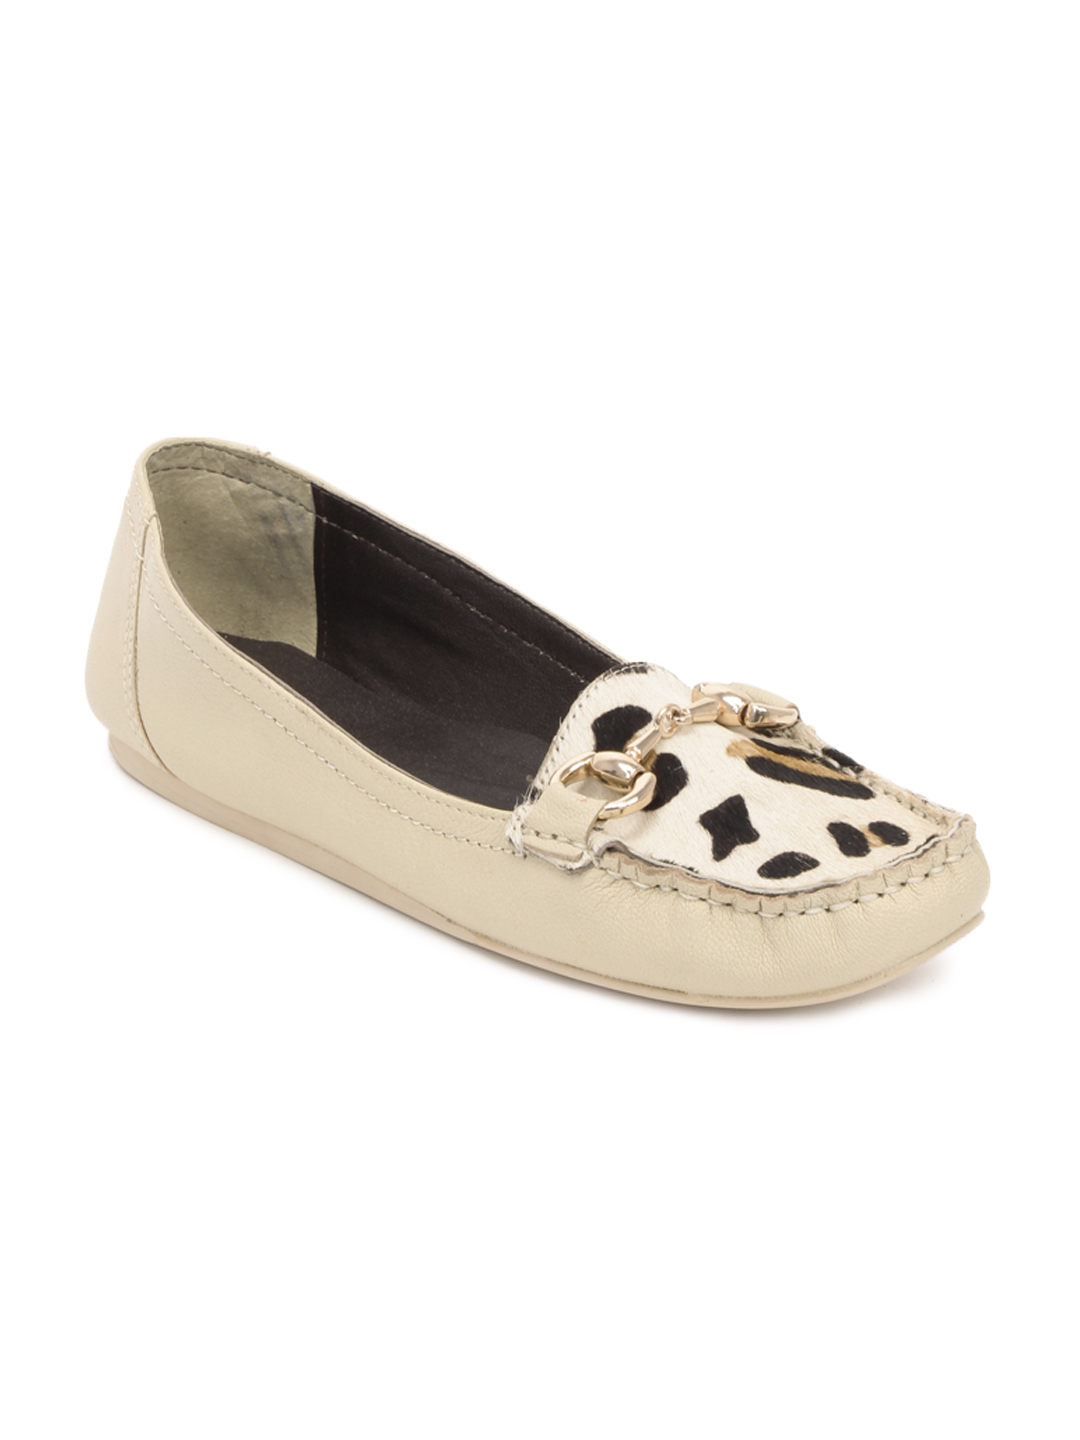 Carlton London Women Cream Shoes